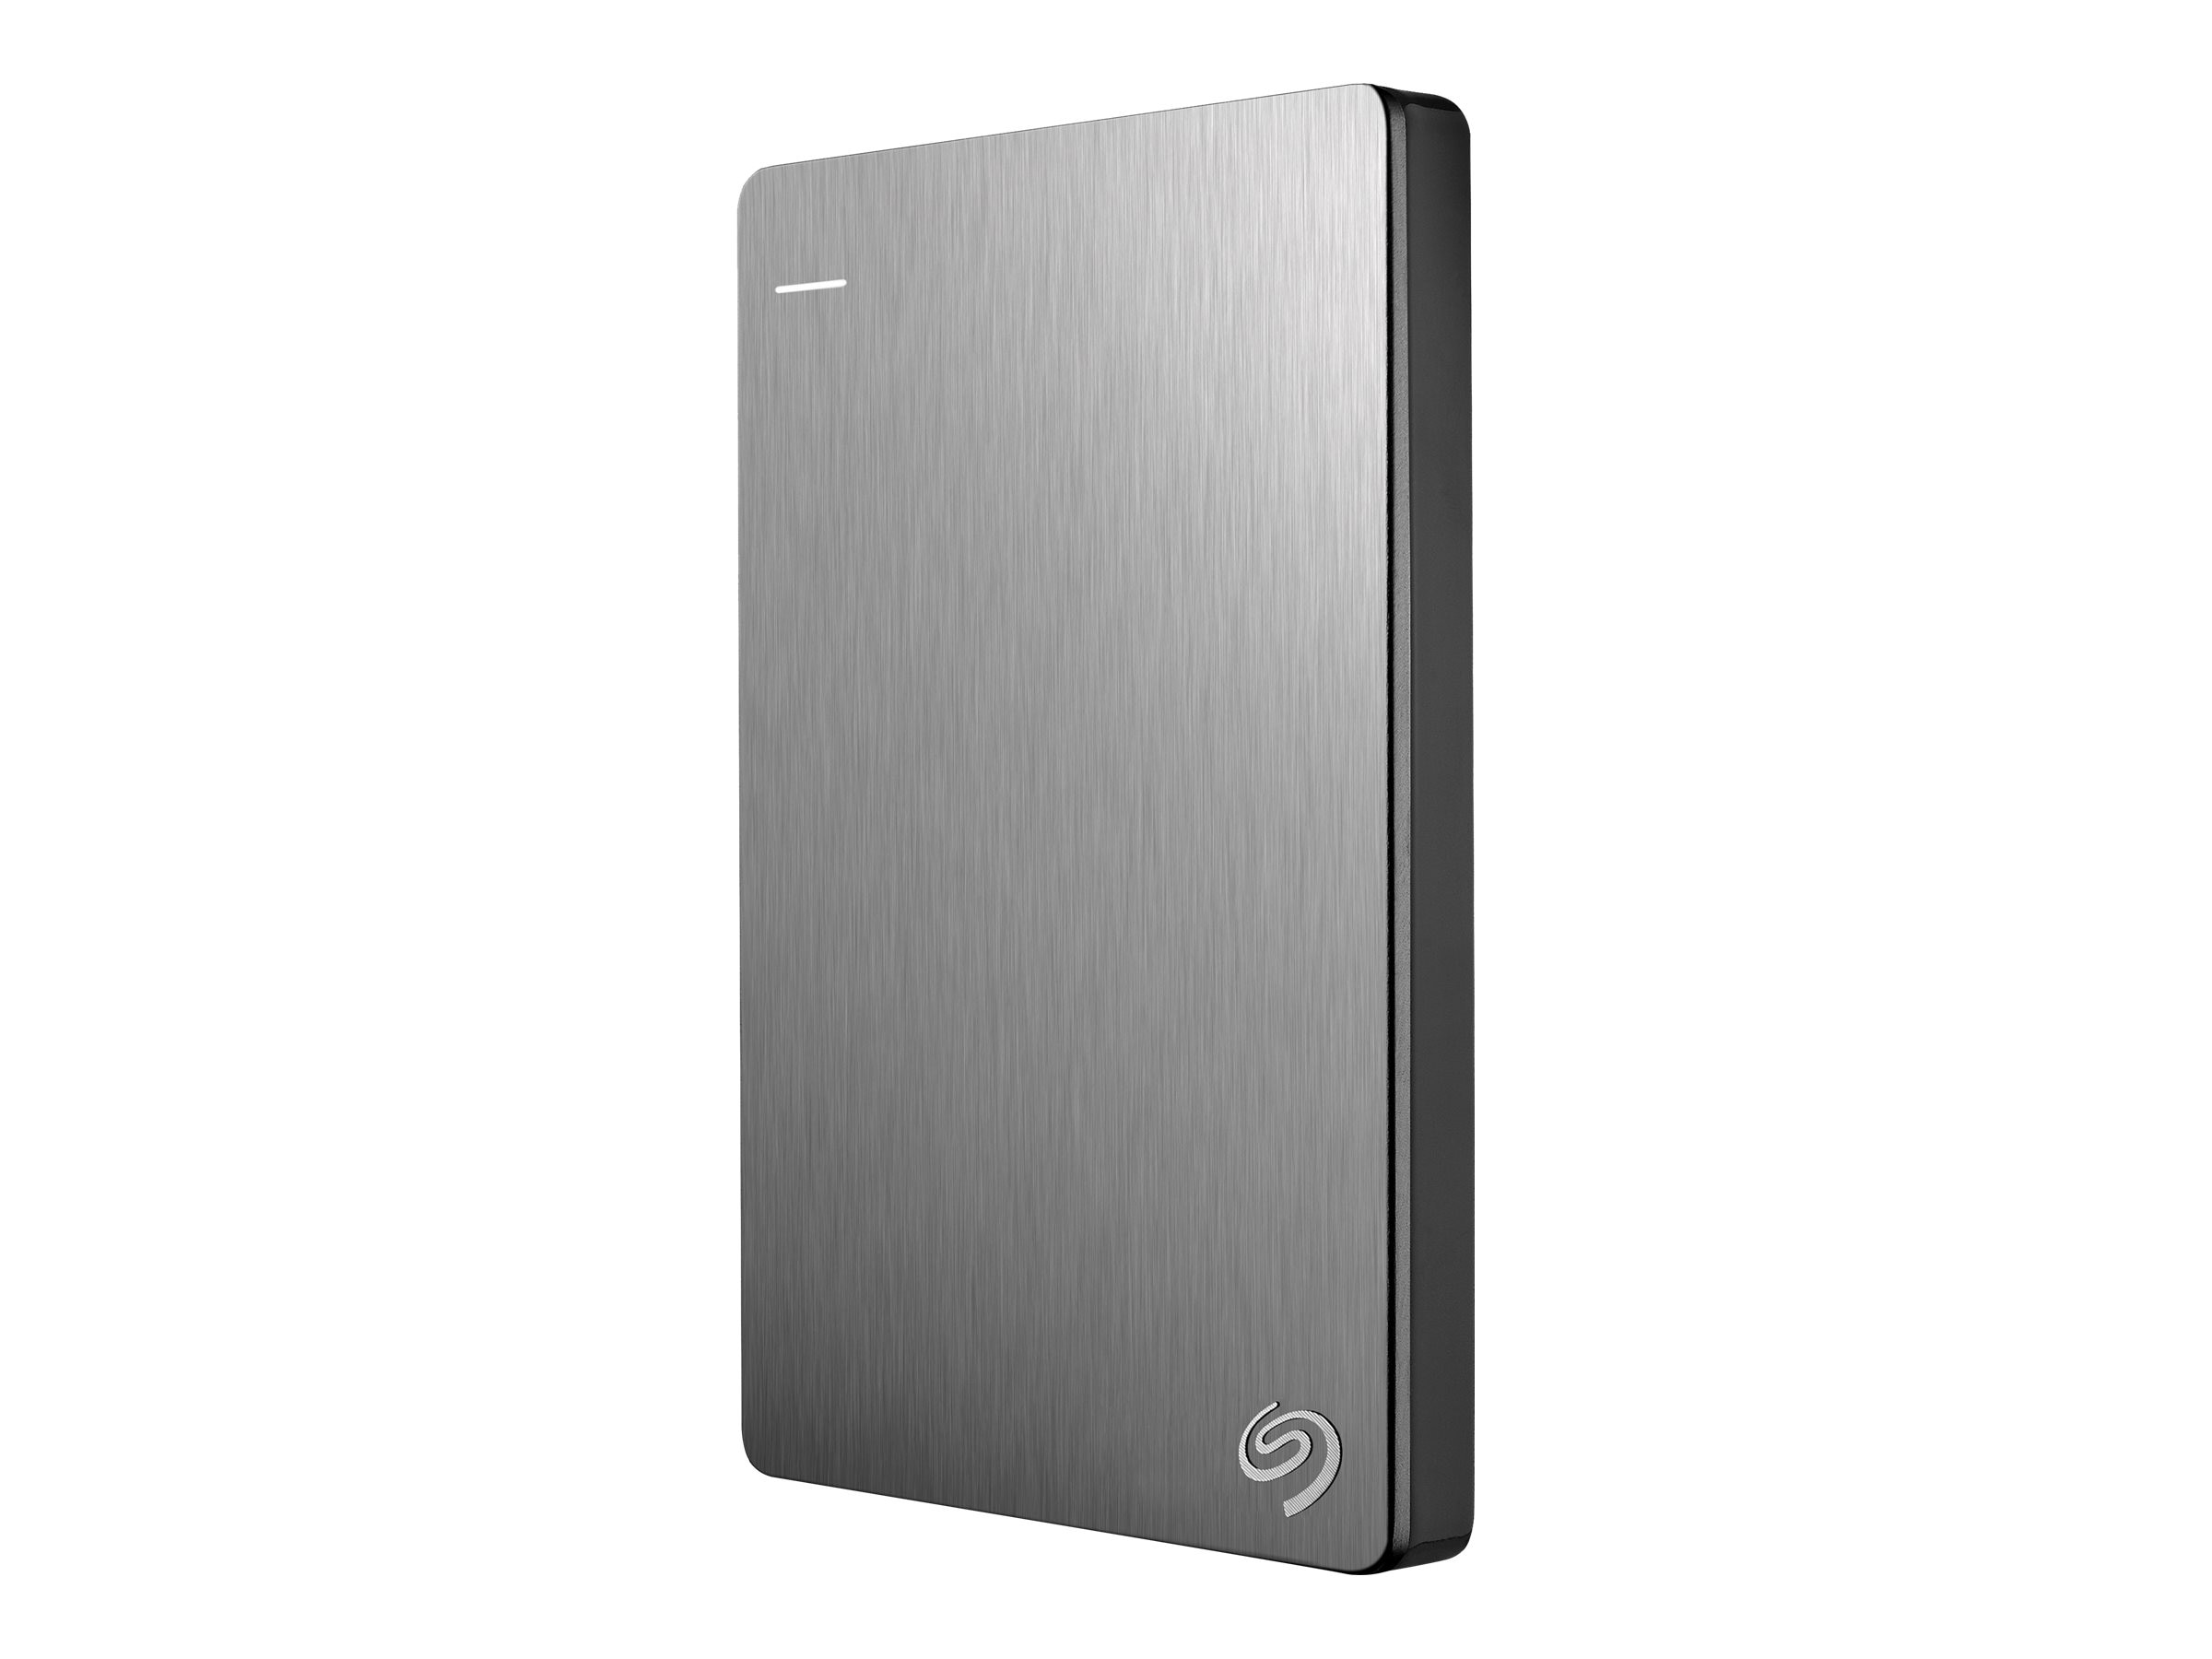 Seagate 1TB Backup Plus USB 3.0 Slim Portable Hard Drive - Silver, STDR1000101